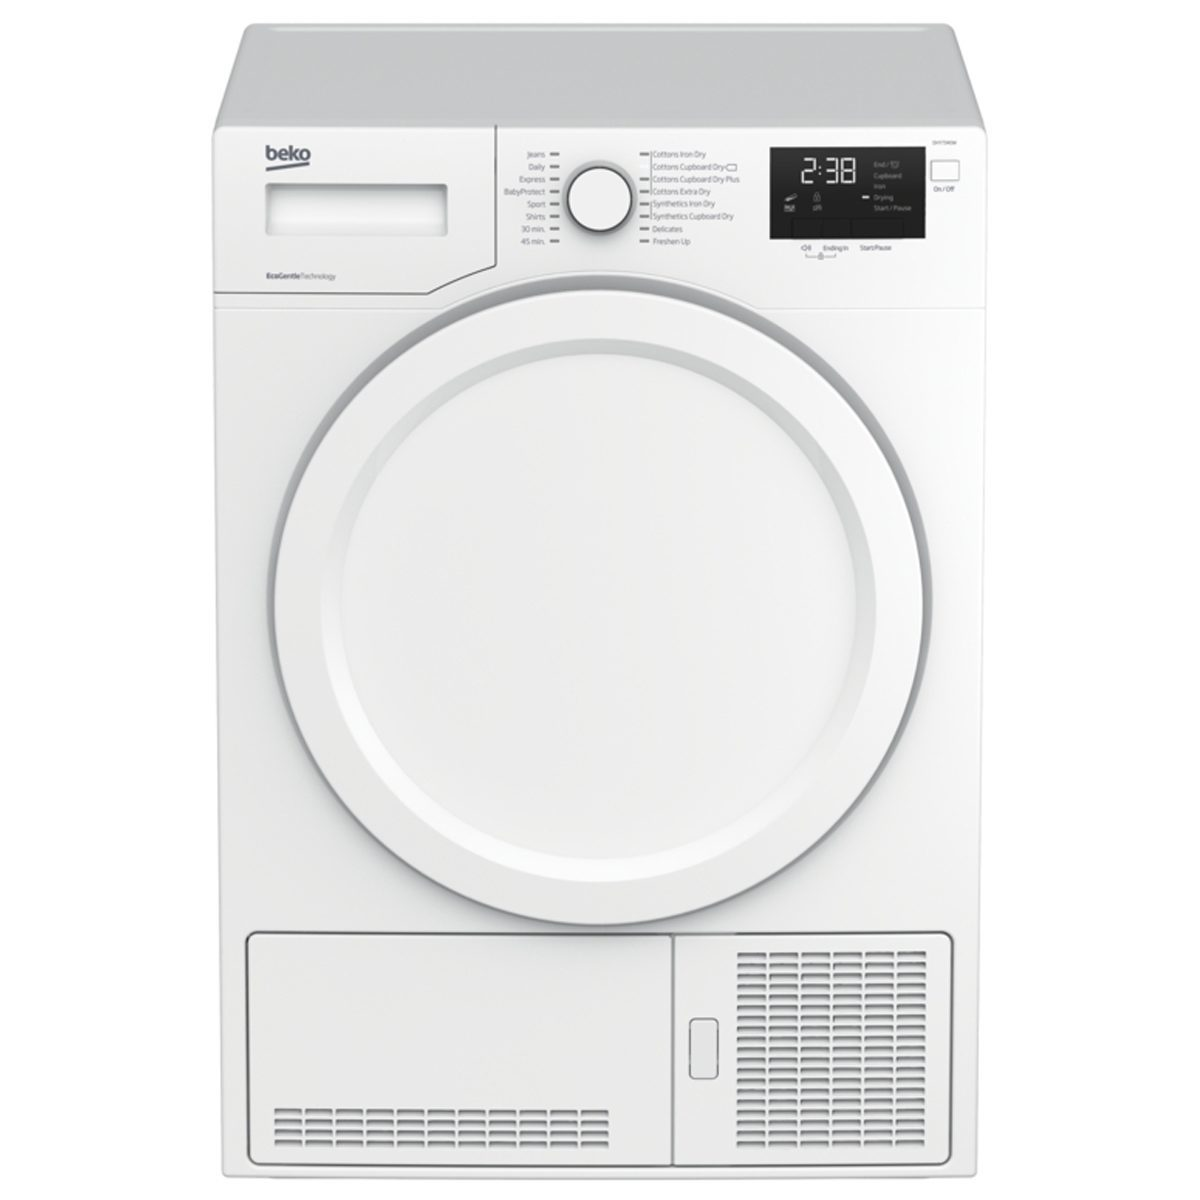 Beko Dhy7340w 7kg Load Heat Pump Condenser Dryer Hughes